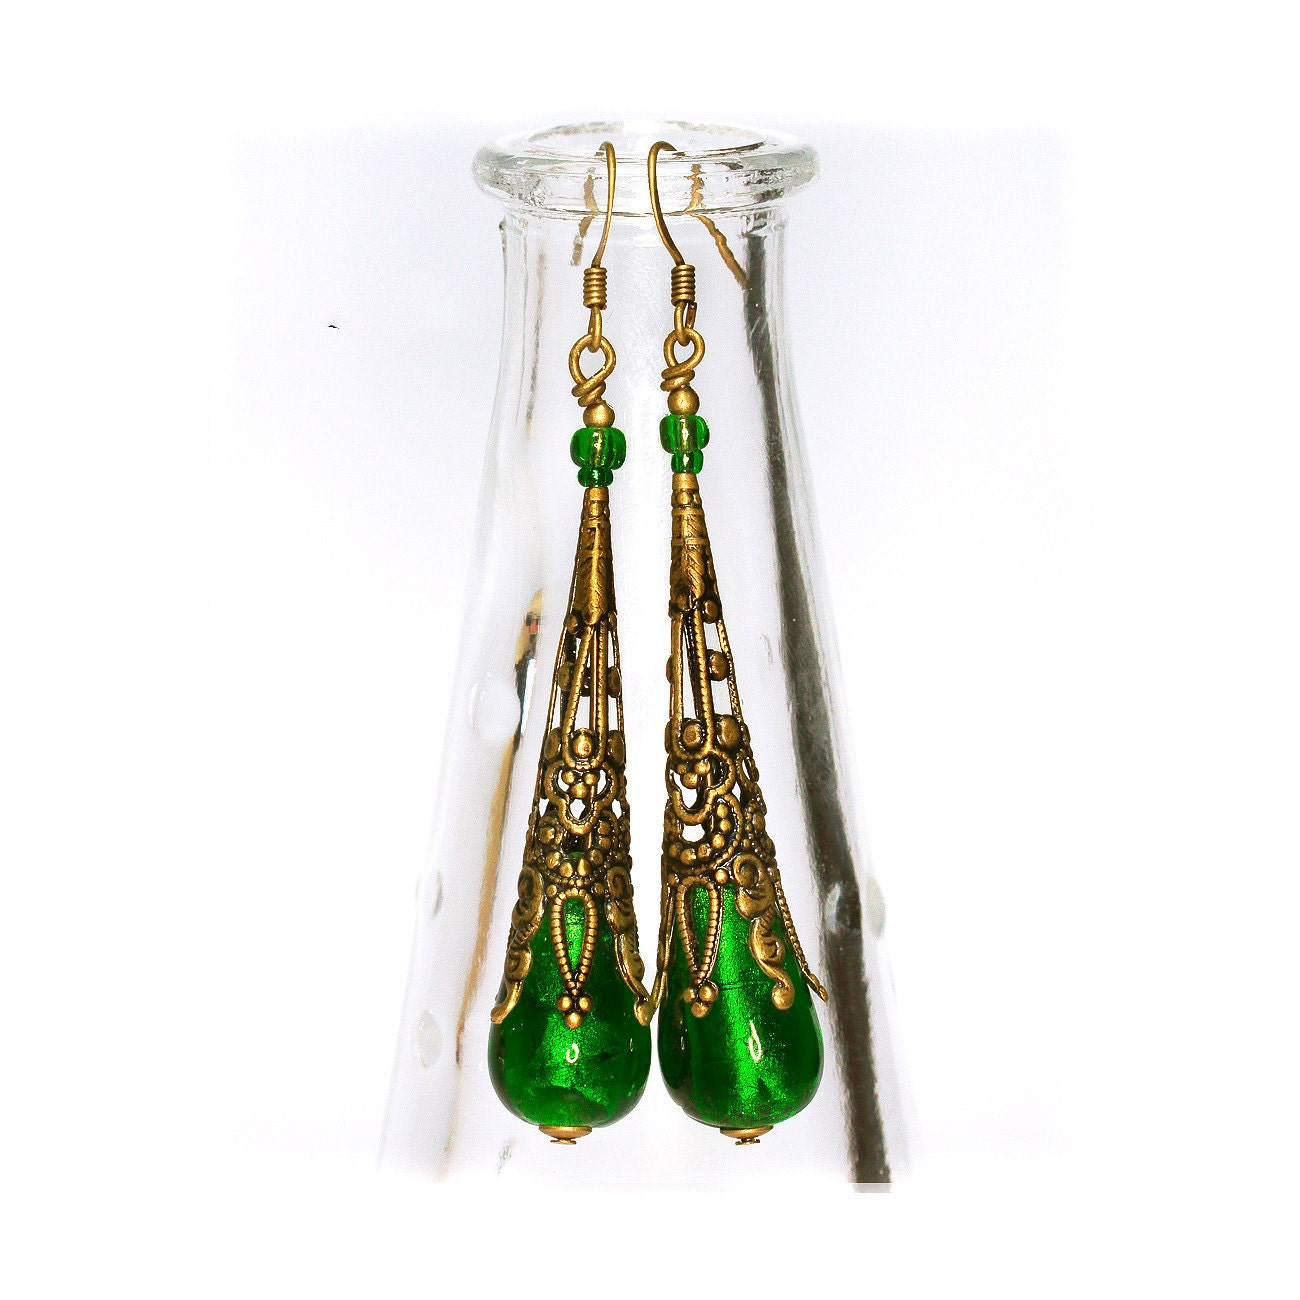 Victorian Style venetian glass earrings  Long Vivid Emerald Green Dangle antique gold, foil glass murano, gift for her - MADEbyMADA